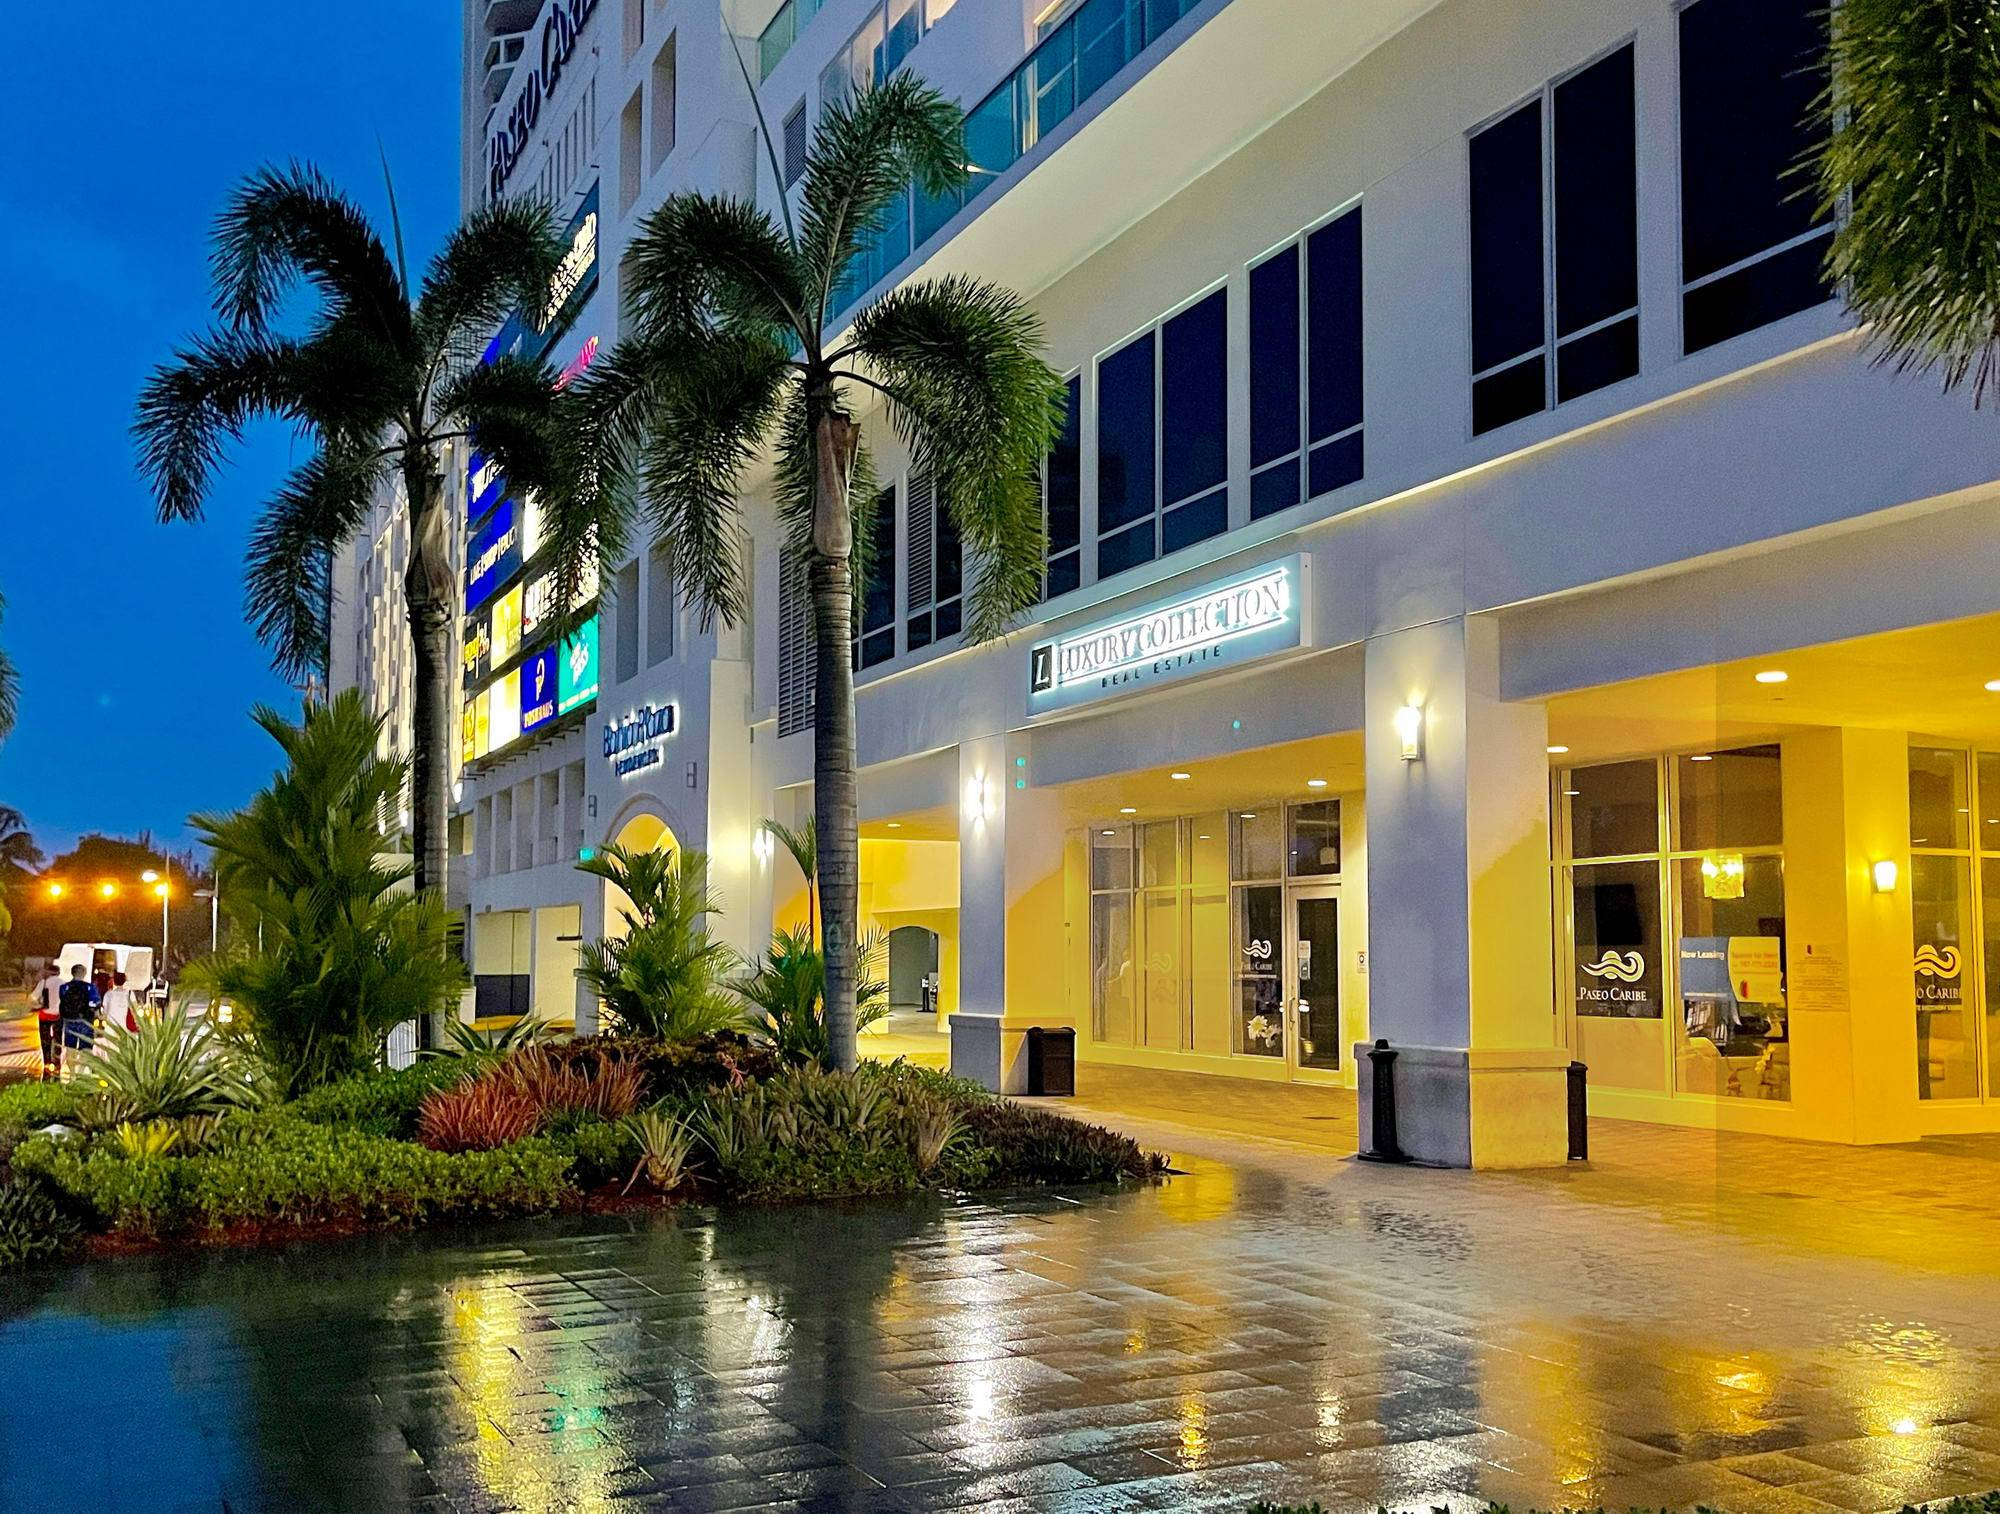 Luxury Collection Paseo Caribe Office, outside view.